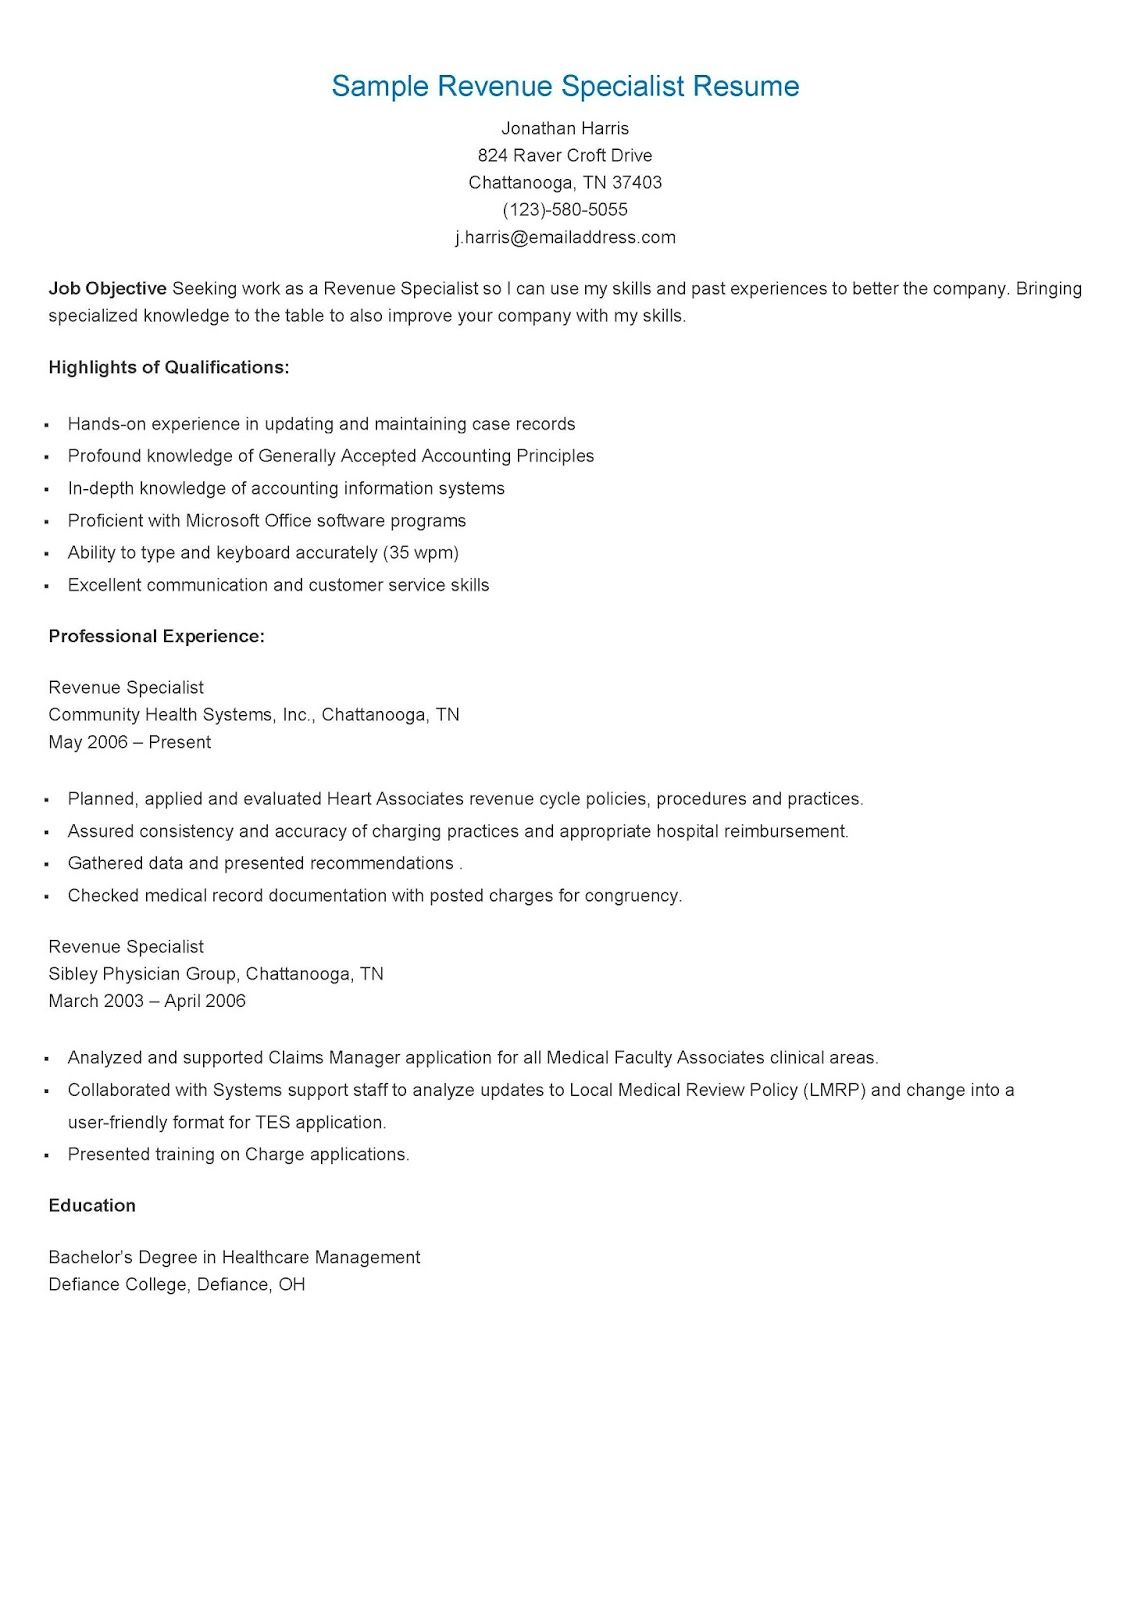 sample revenue specialist resume objective examples healthcare cycle lpn cover letter Resume Healthcare Revenue Cycle Resume Examples